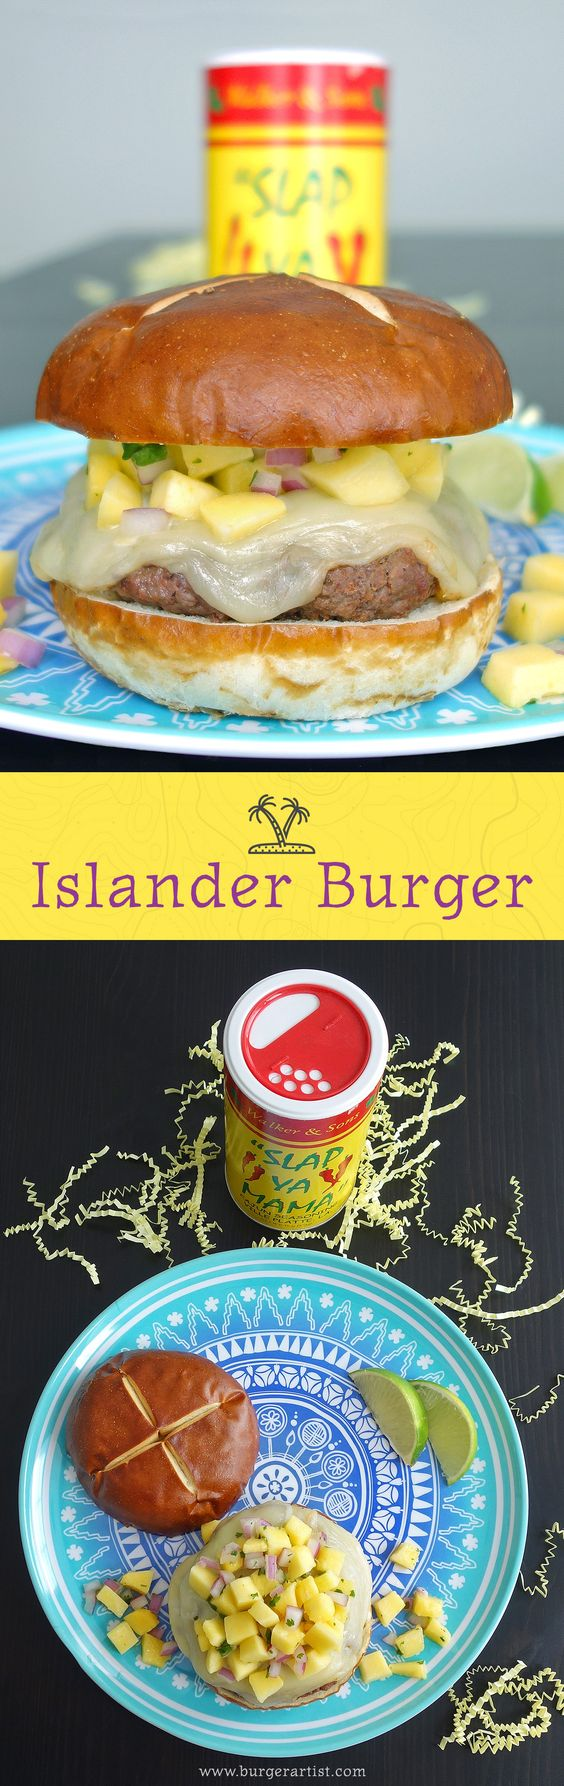 The Islander Burger is an awesome flavor combination of sweet mango salsa and spicy cajun seasoning. Get out there, get grilling, and get tropical!